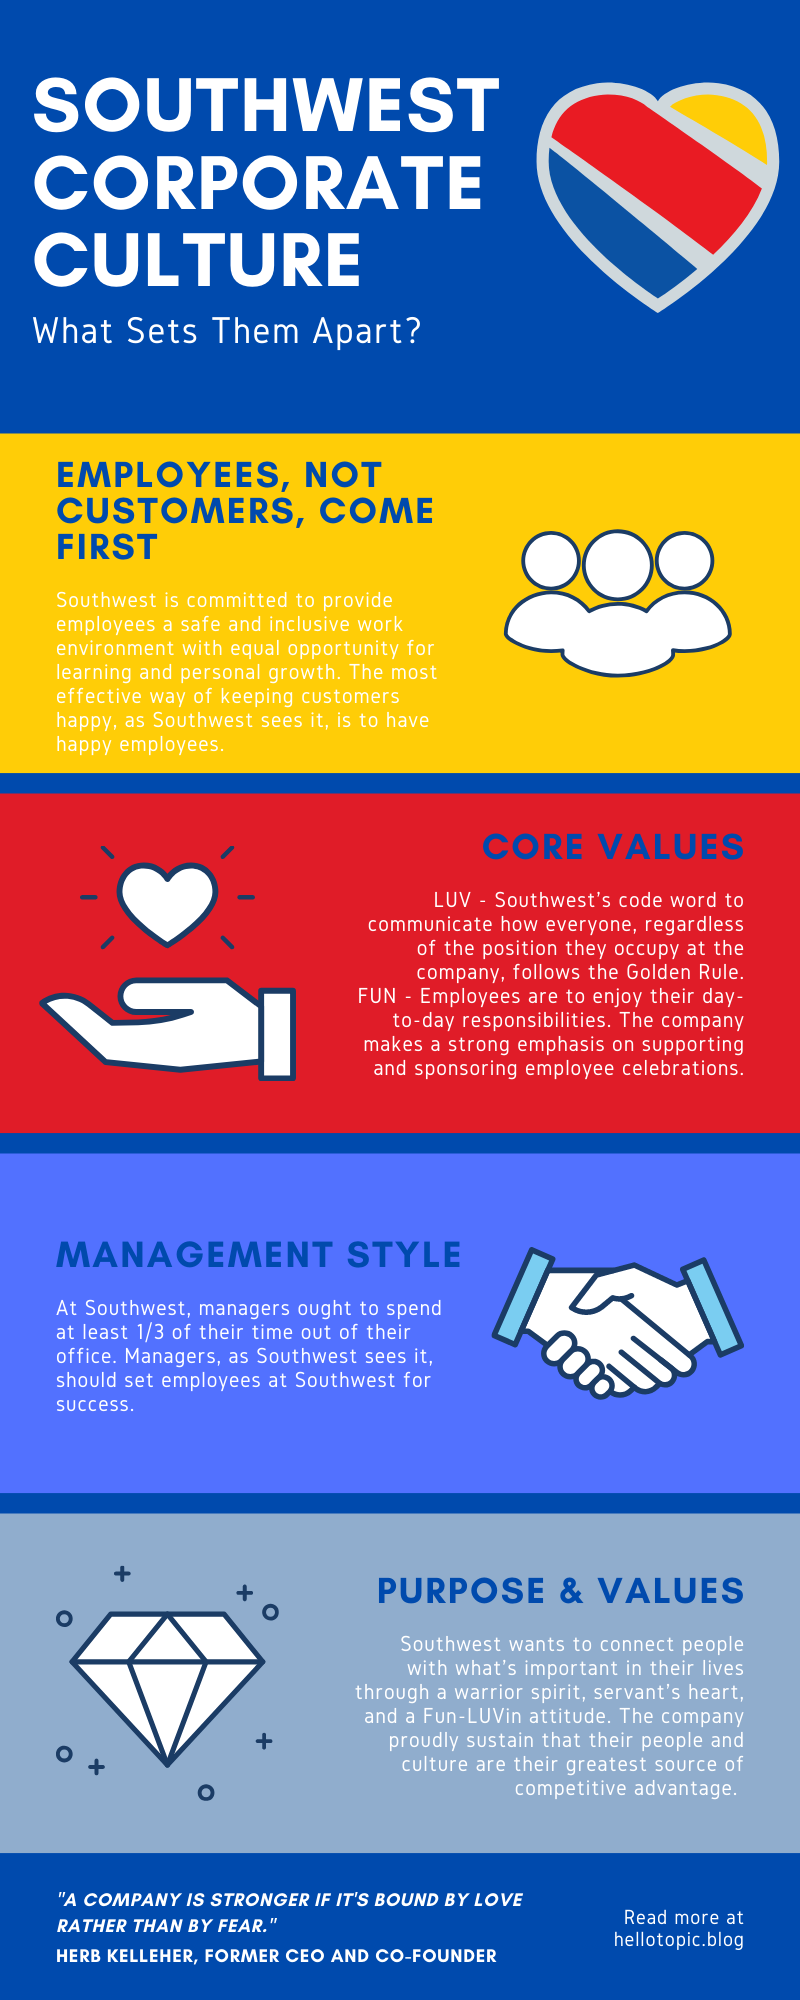 An infographic designed by Topic Insights detailing the magic behind Southwest' Corporate Culture